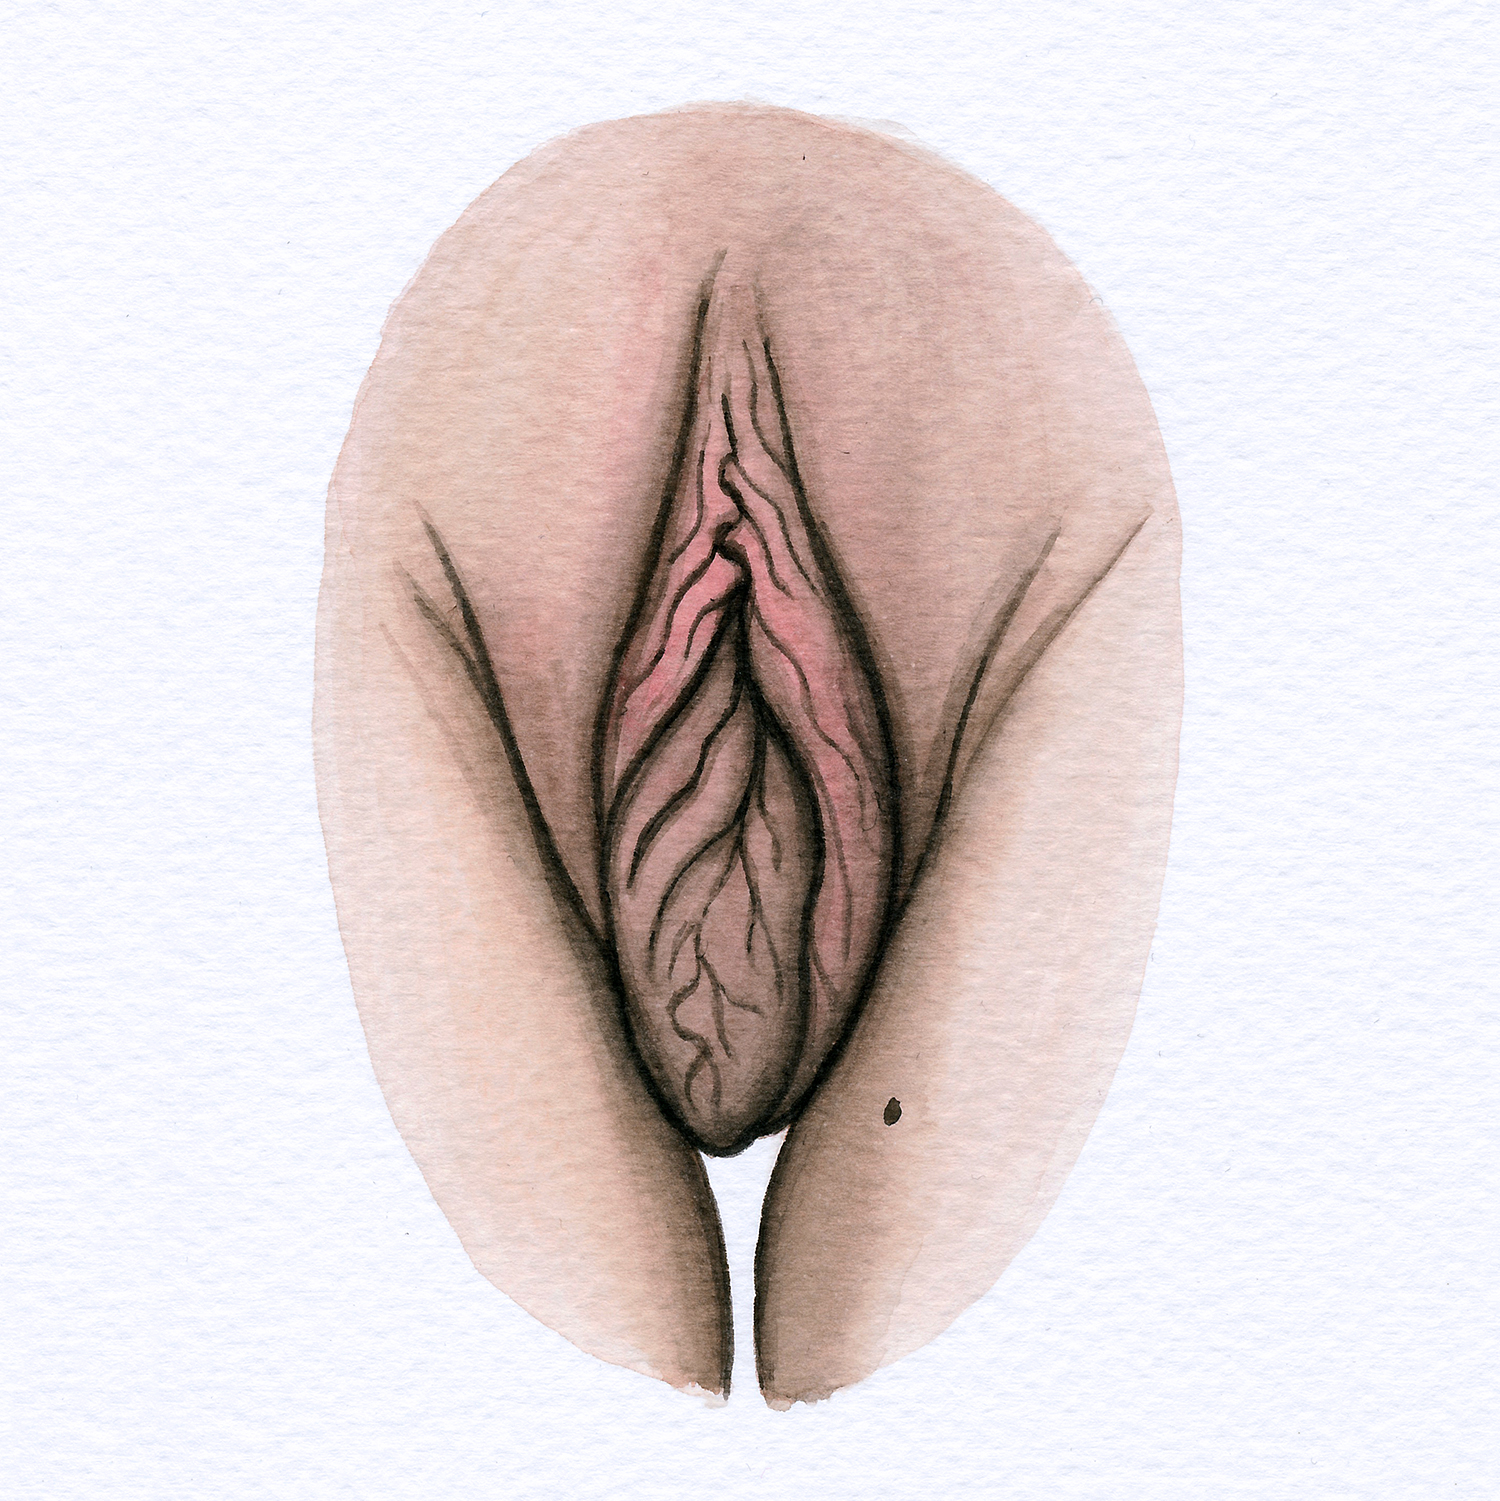 The Vulva Gallery - Vulva Portrait #14 (square).jpg